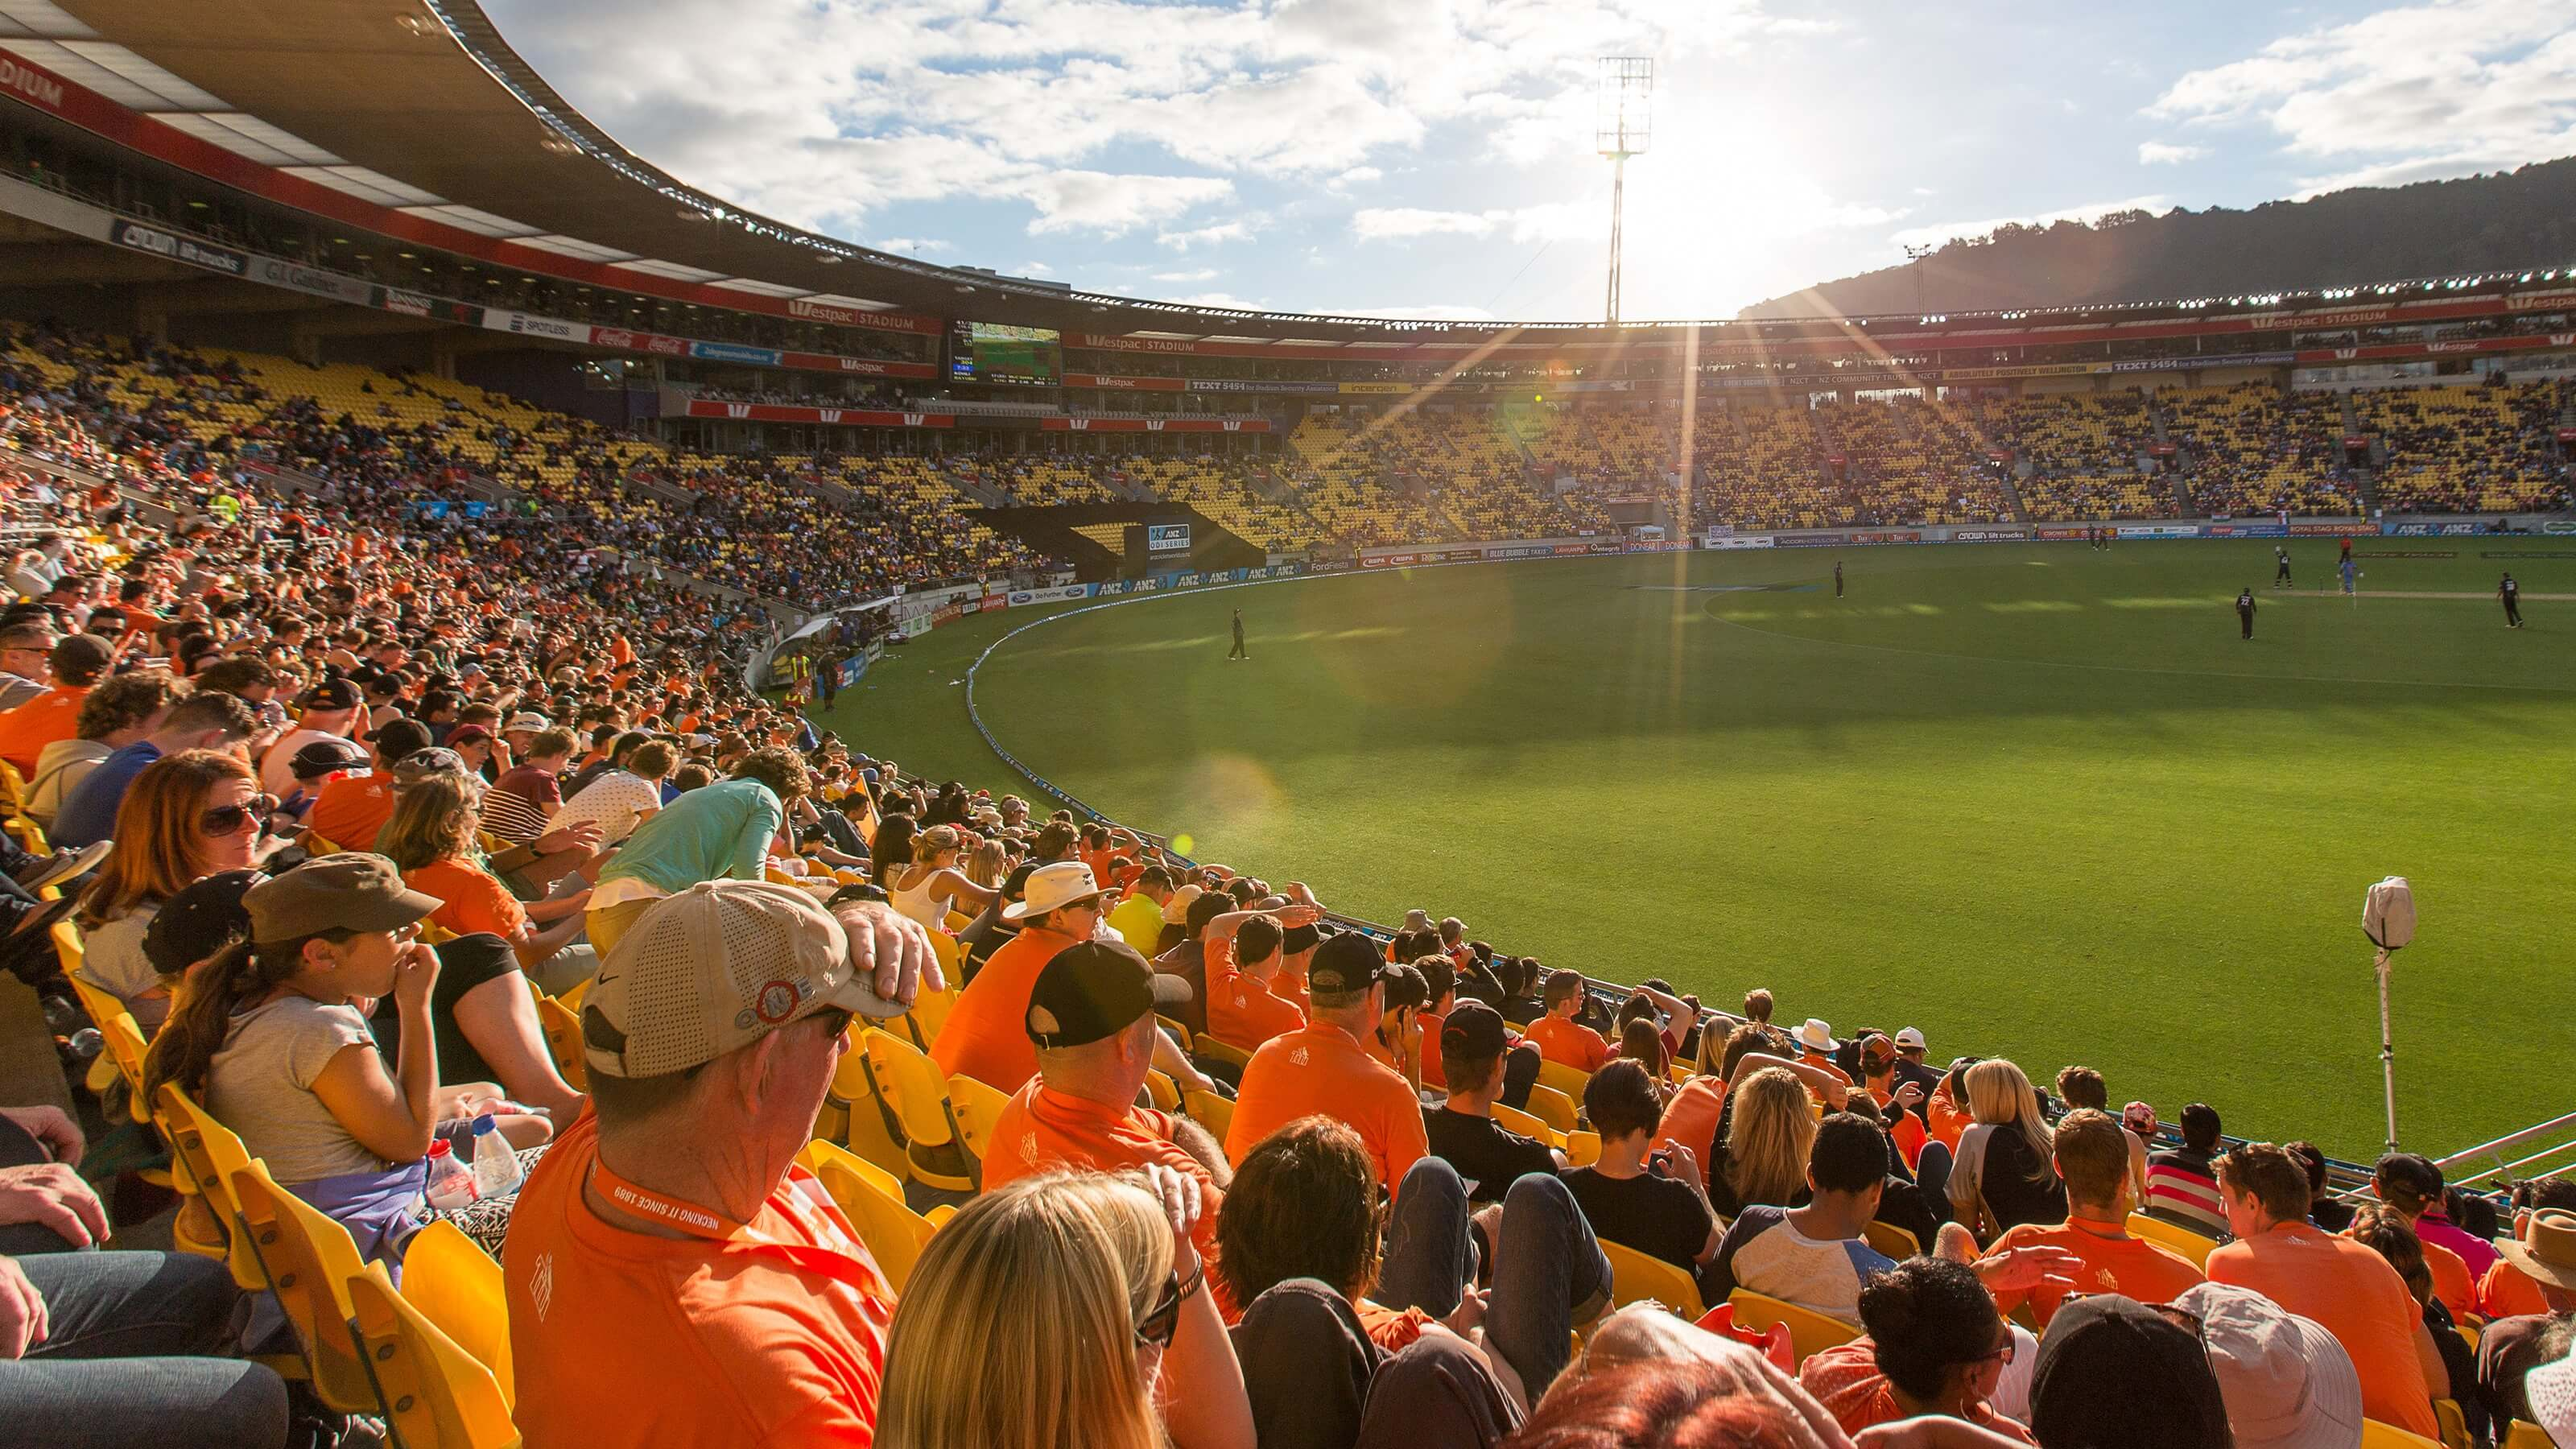 Crowd of people watching sporting match live from Westpac Stadium in Wellington.